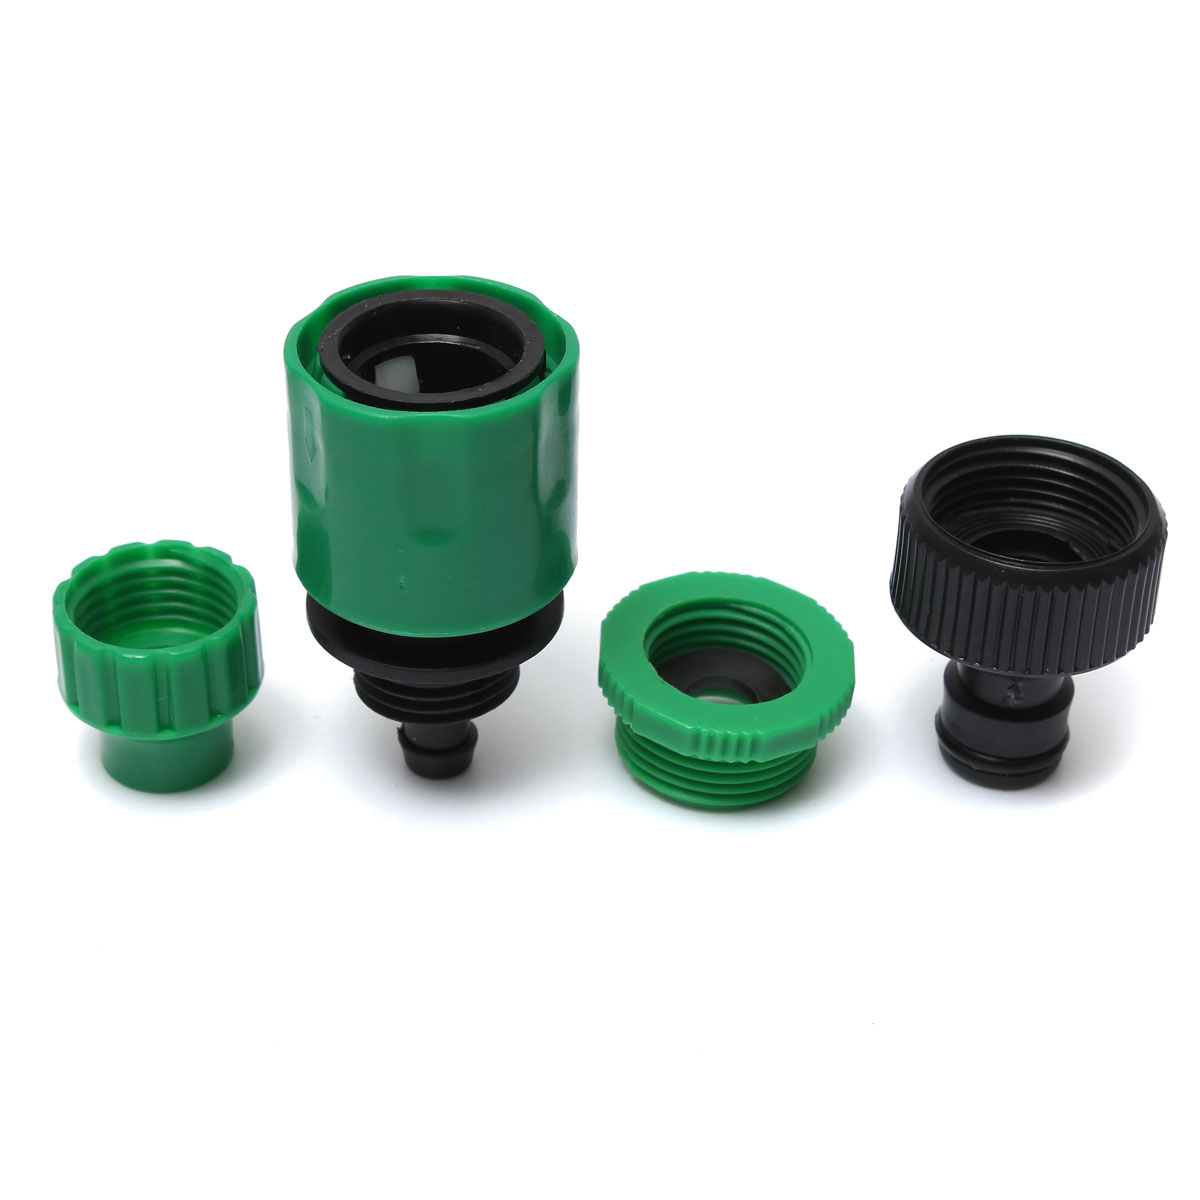 8 11 and 4 7 plastic garden hose water pipe connector for Plastic water pipe